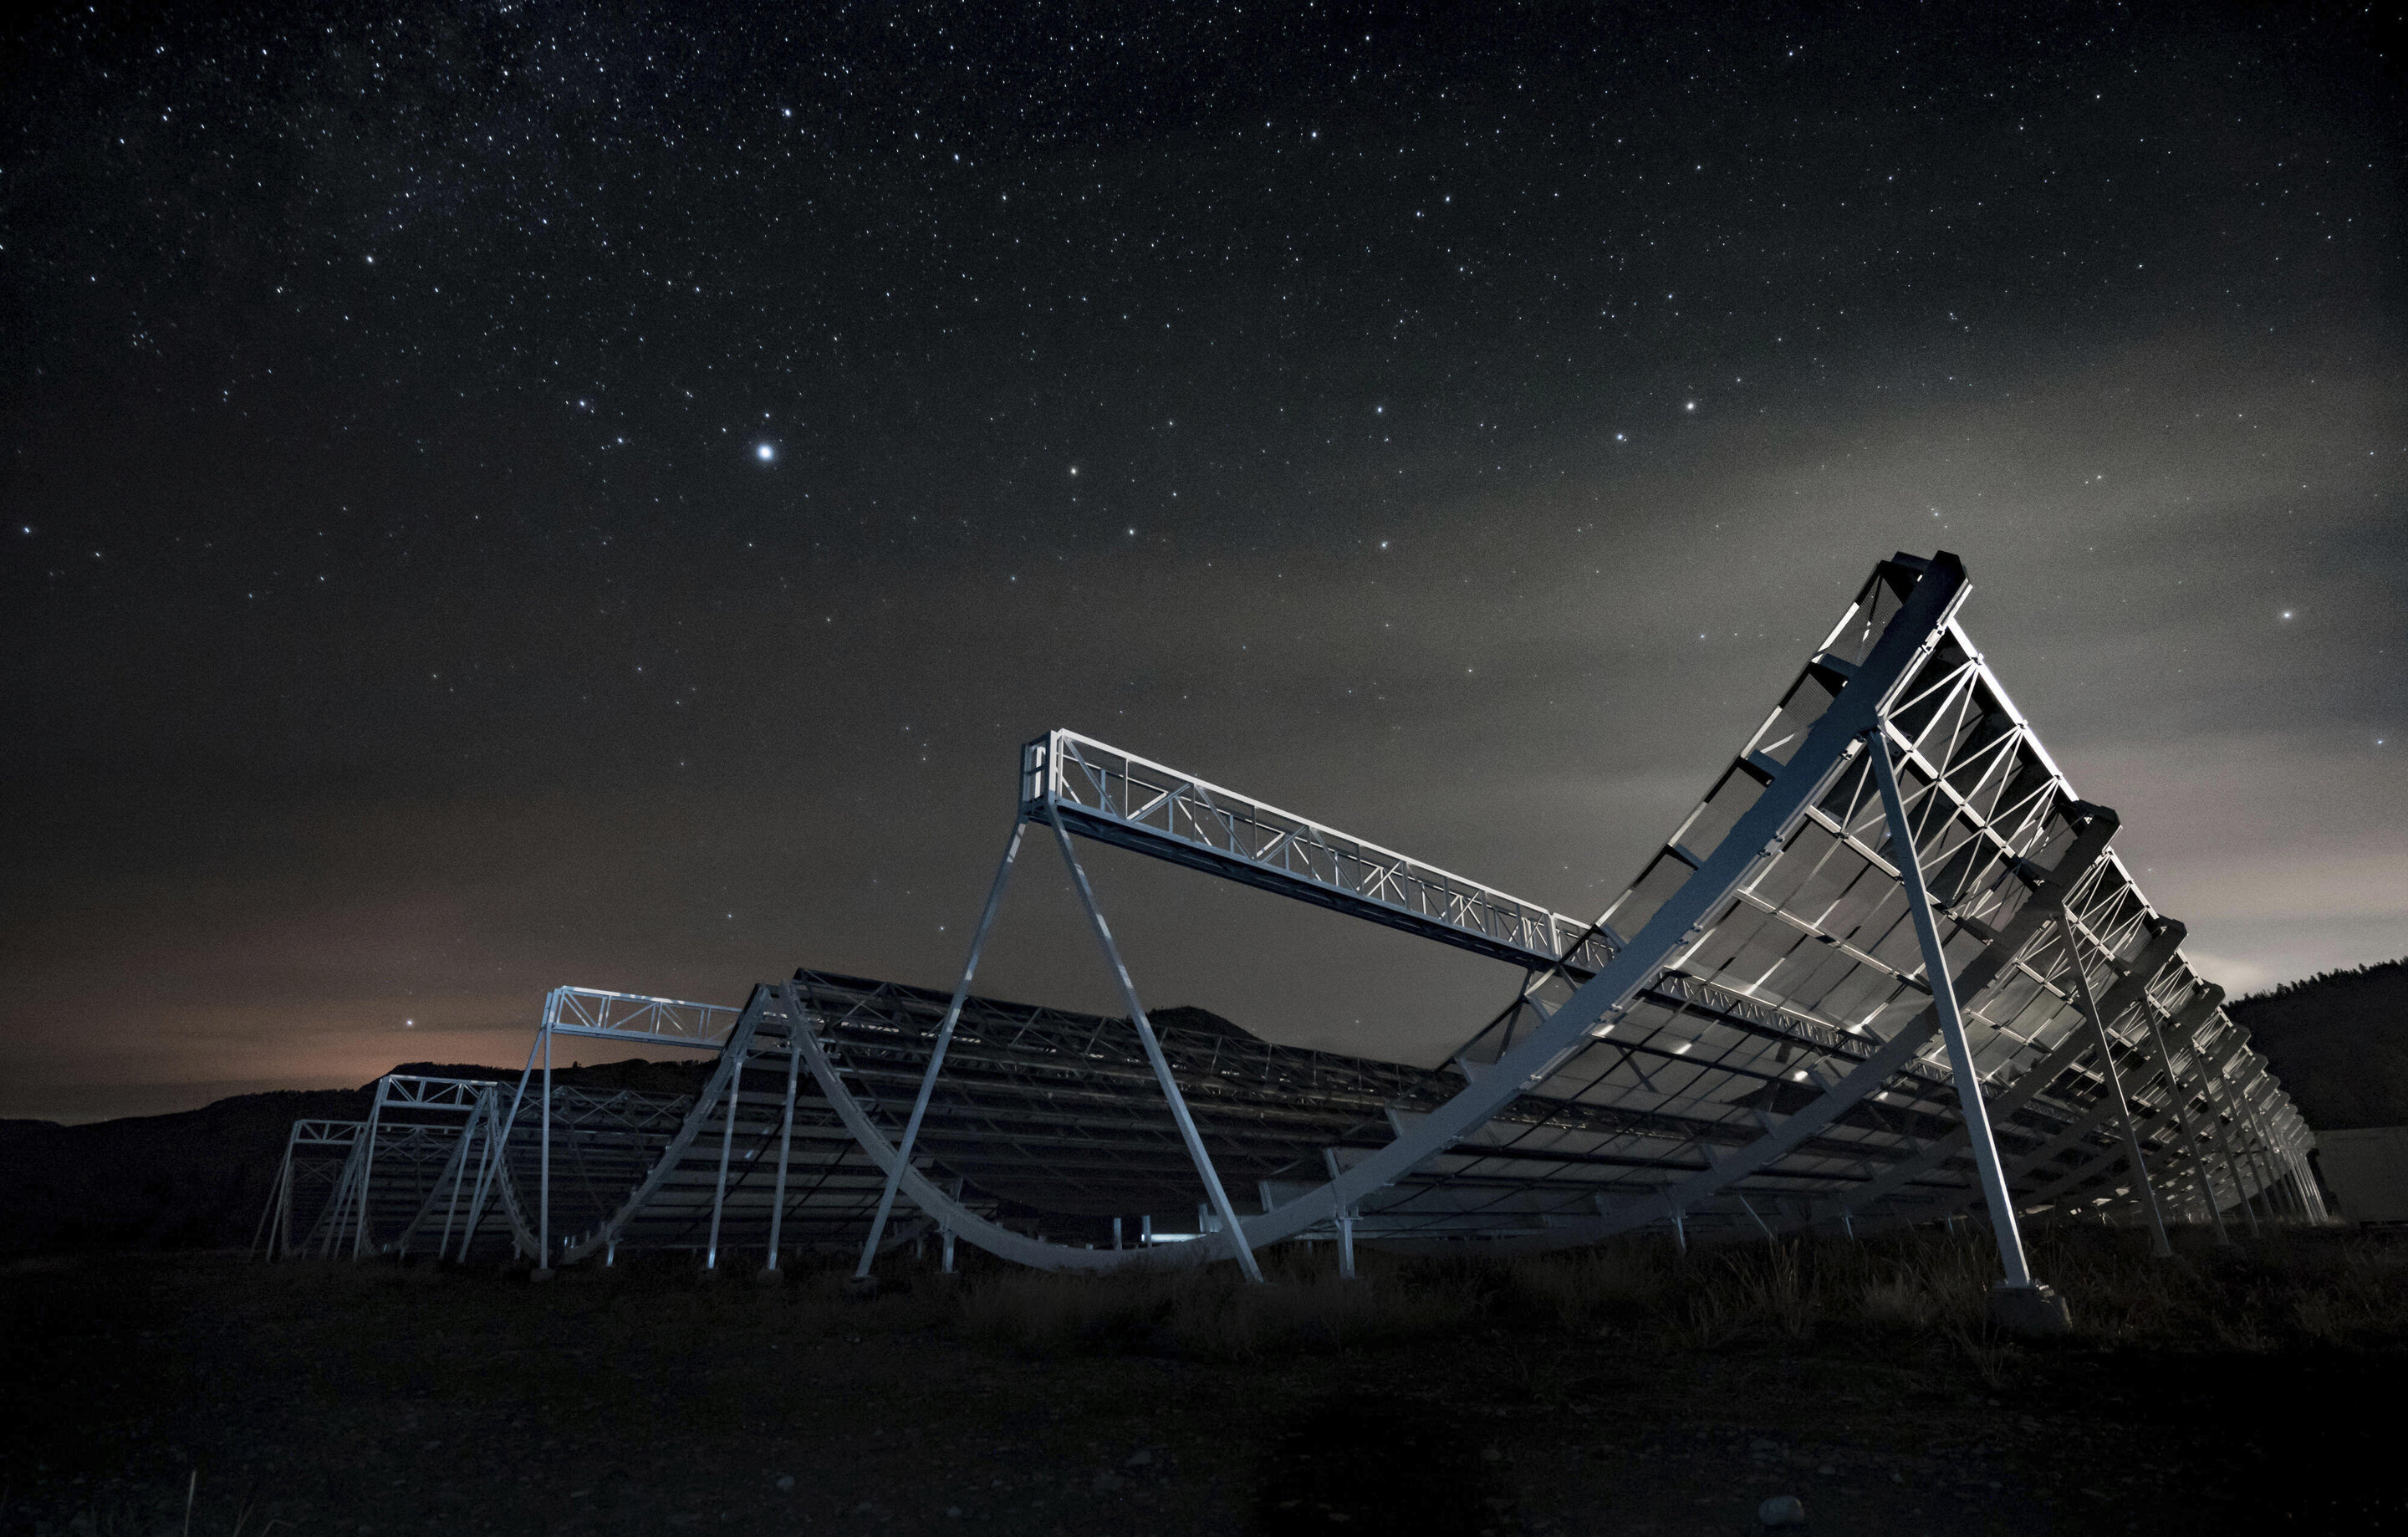 Astronomers find cosmic radio burst source